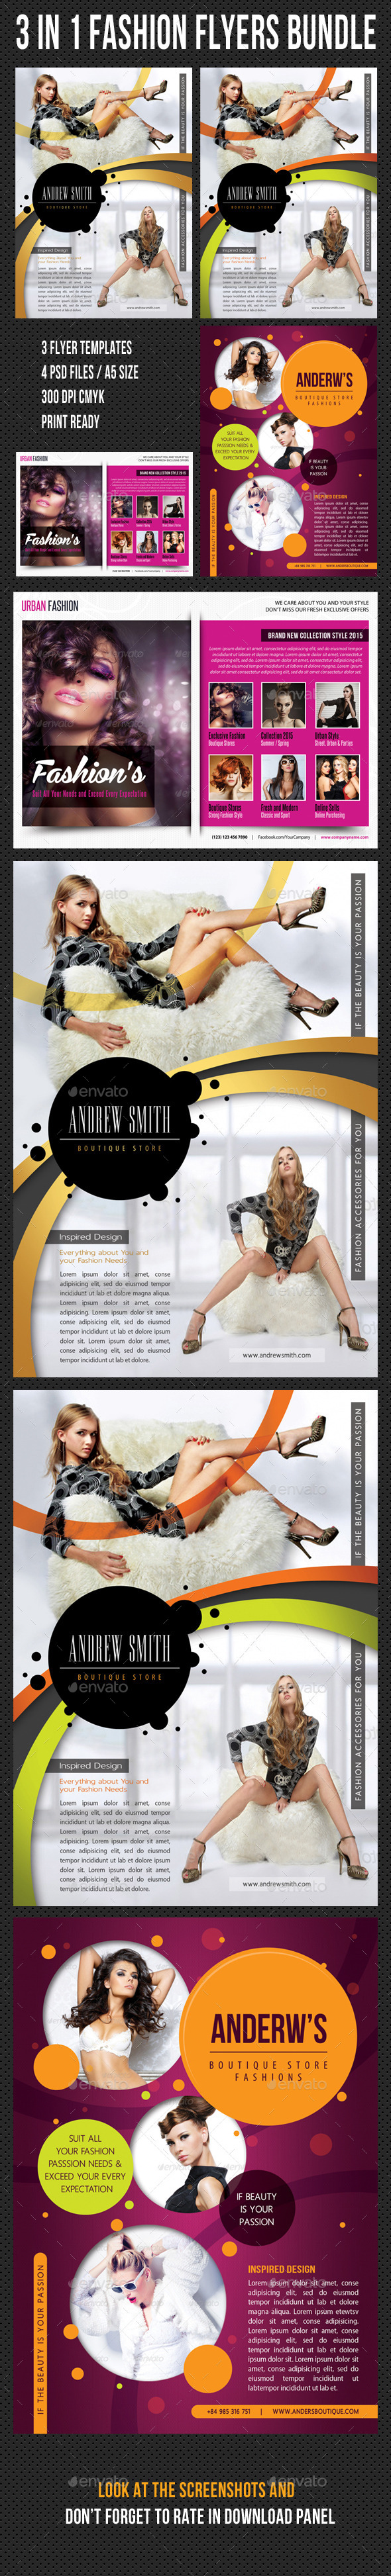 3 in 1 Fashion Product Flyer Bundle 21 - Corporate Flyers